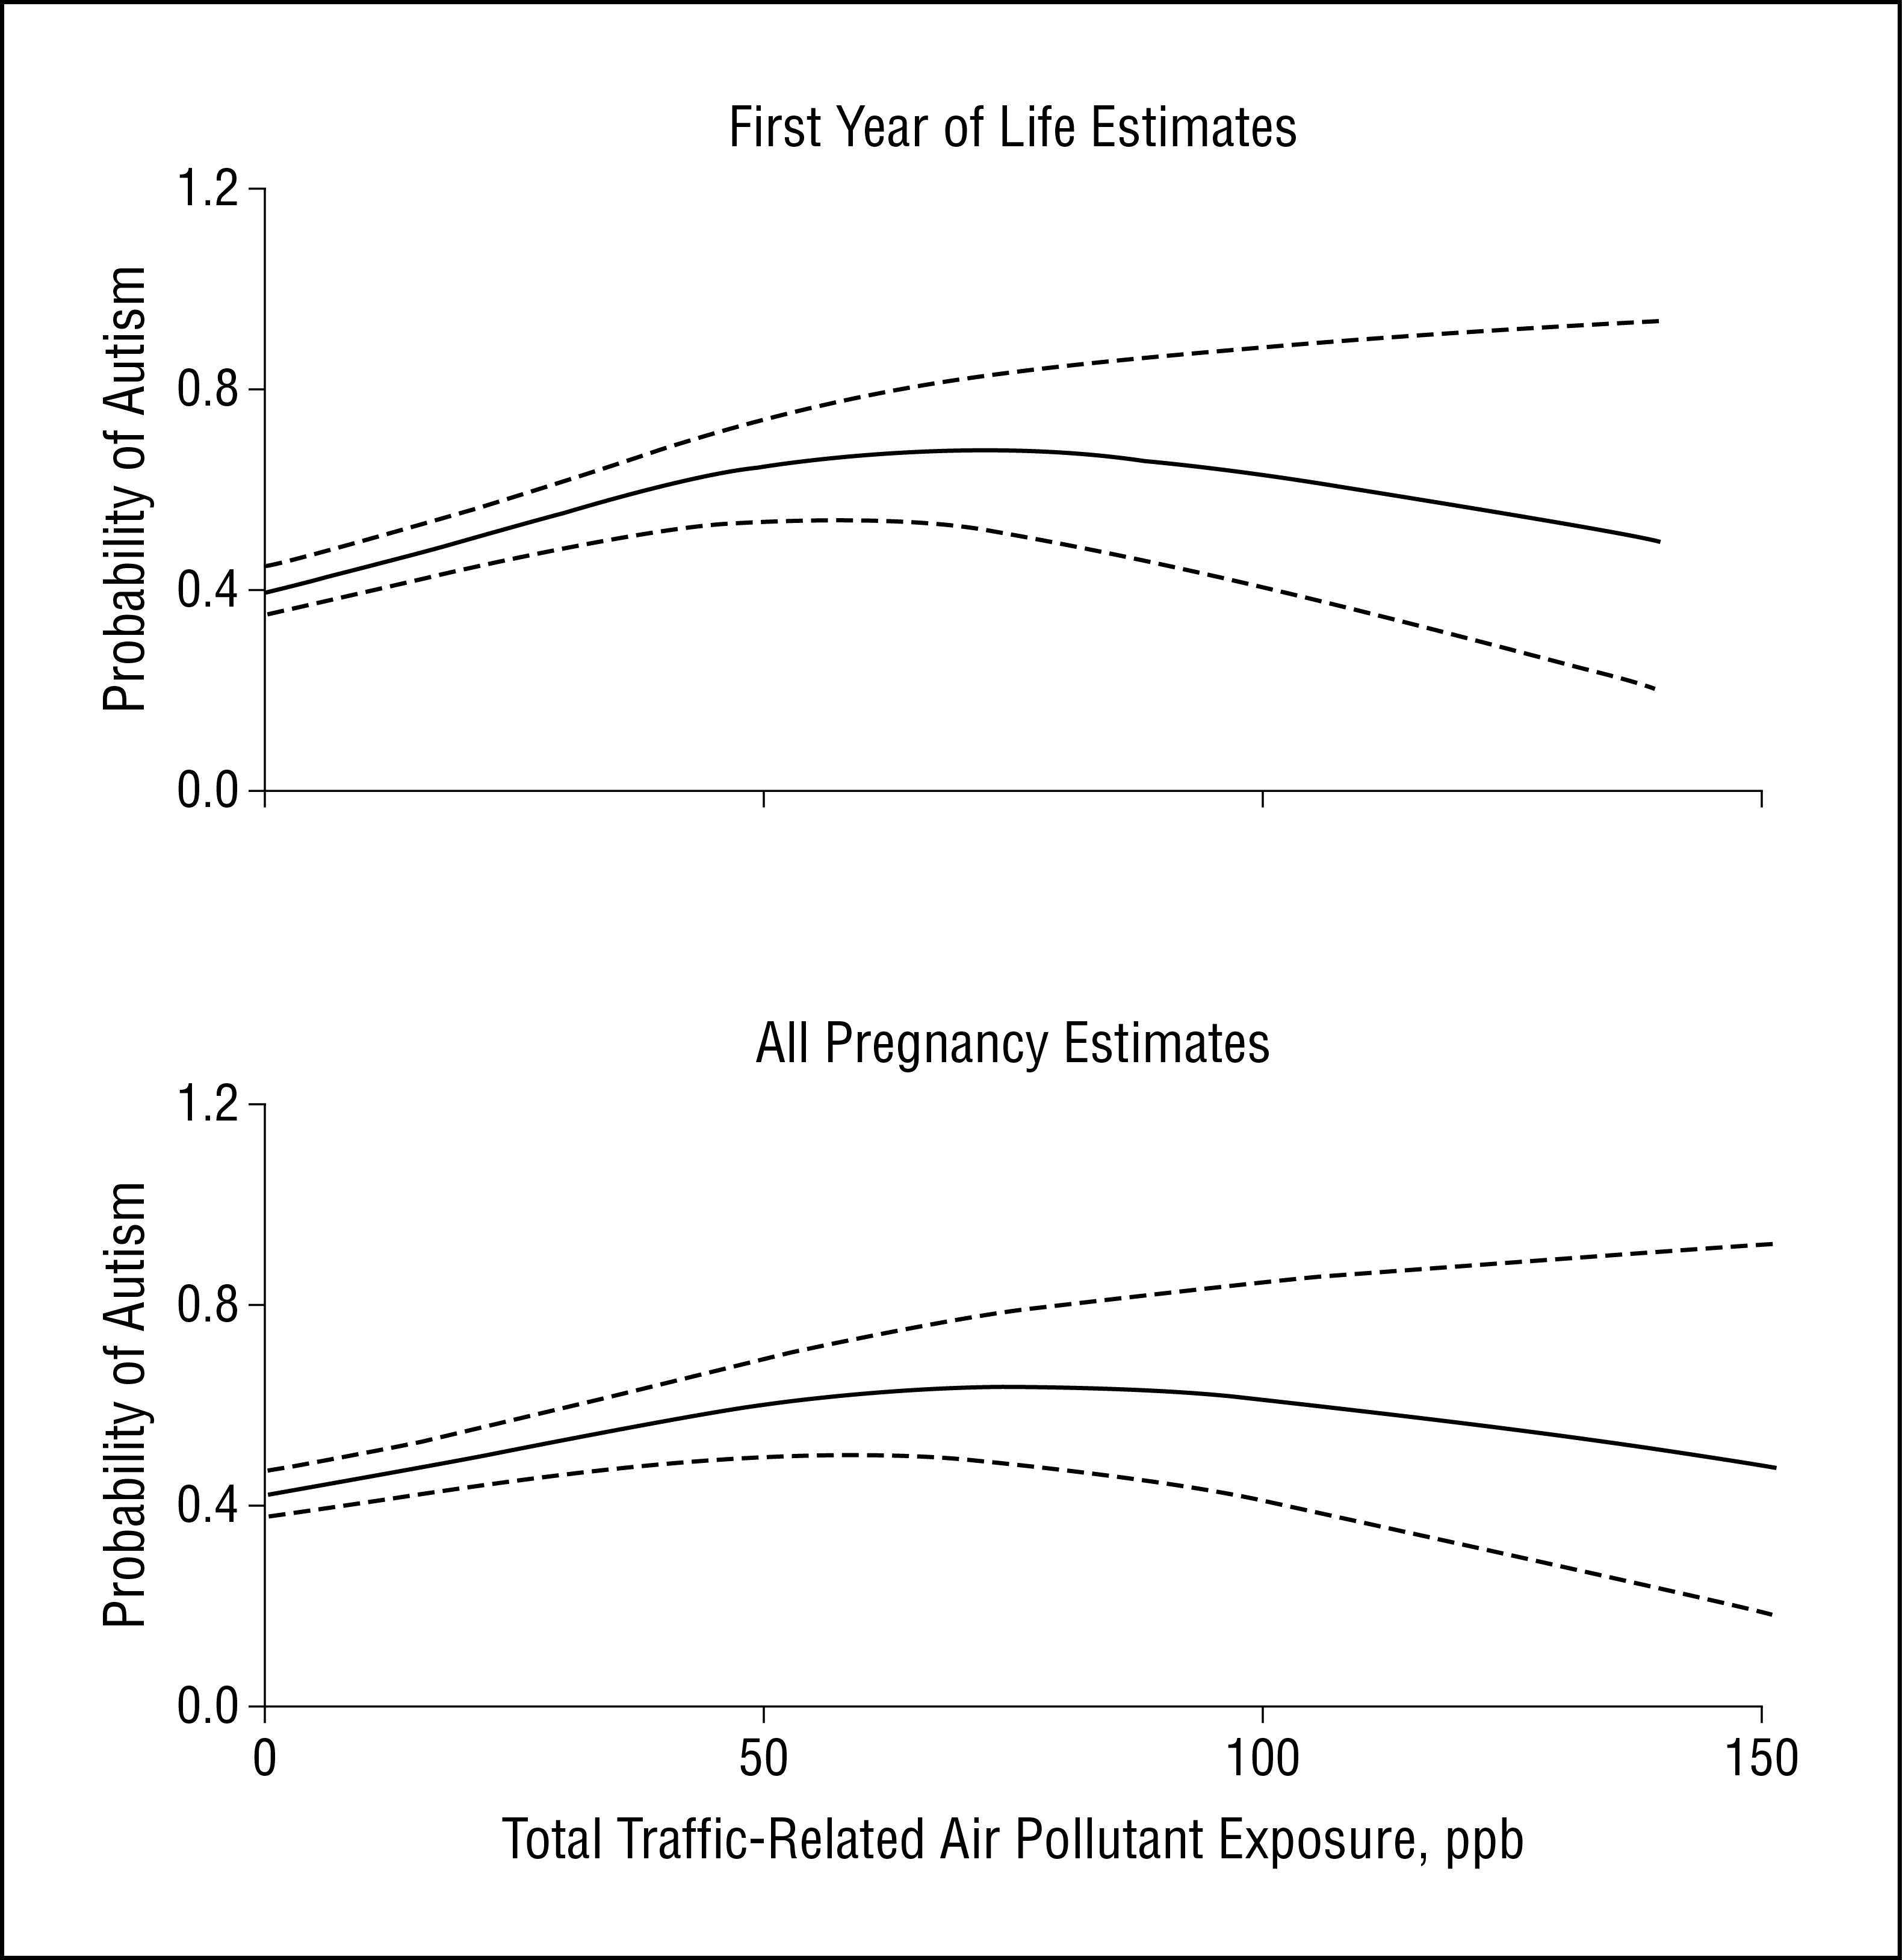 Probability of autism and traffic pollution in first year of life